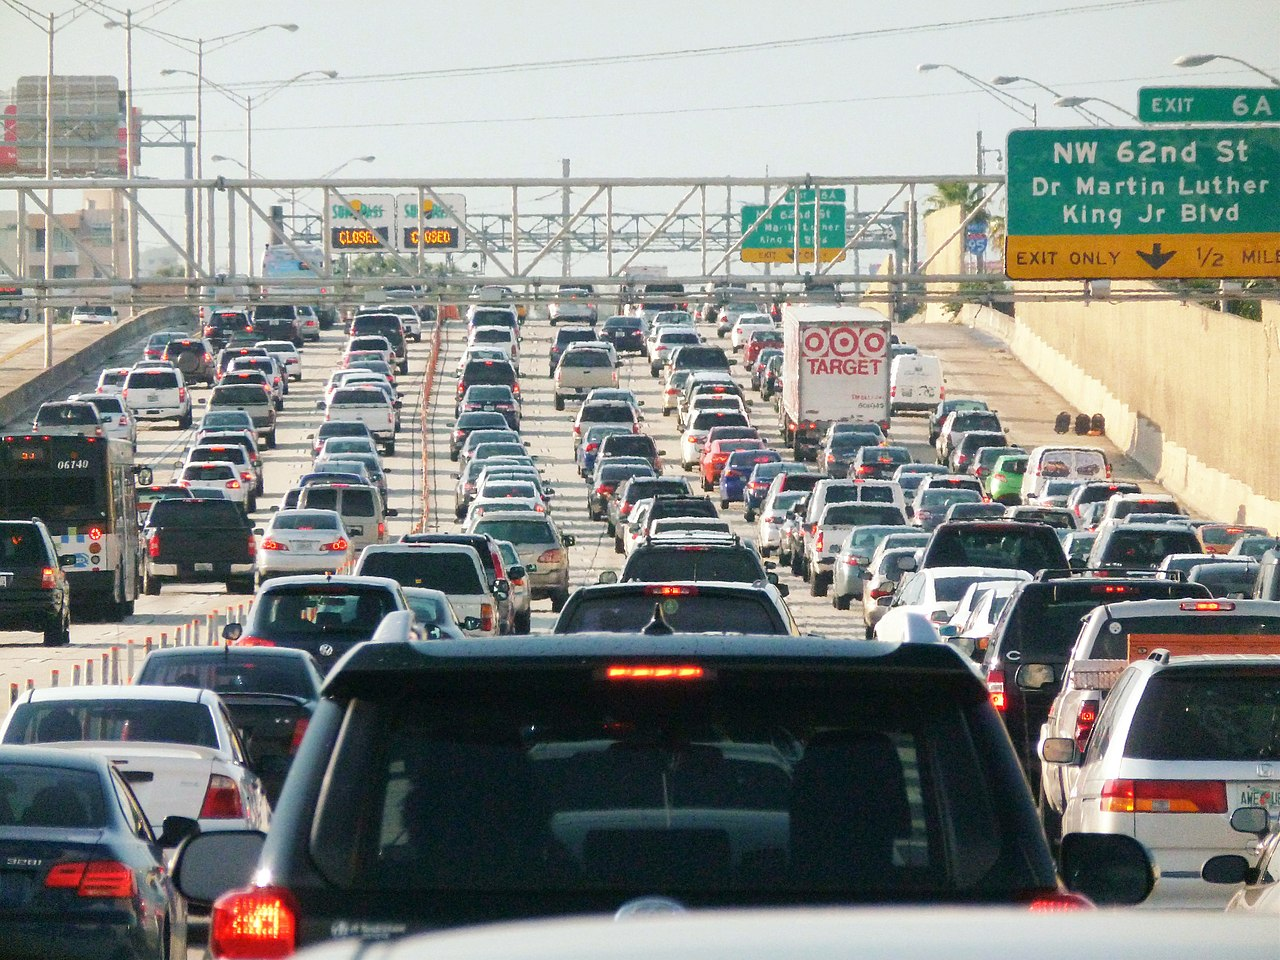 1280px-Miami_traffic_jam%2C_I-95_North_rush_hour